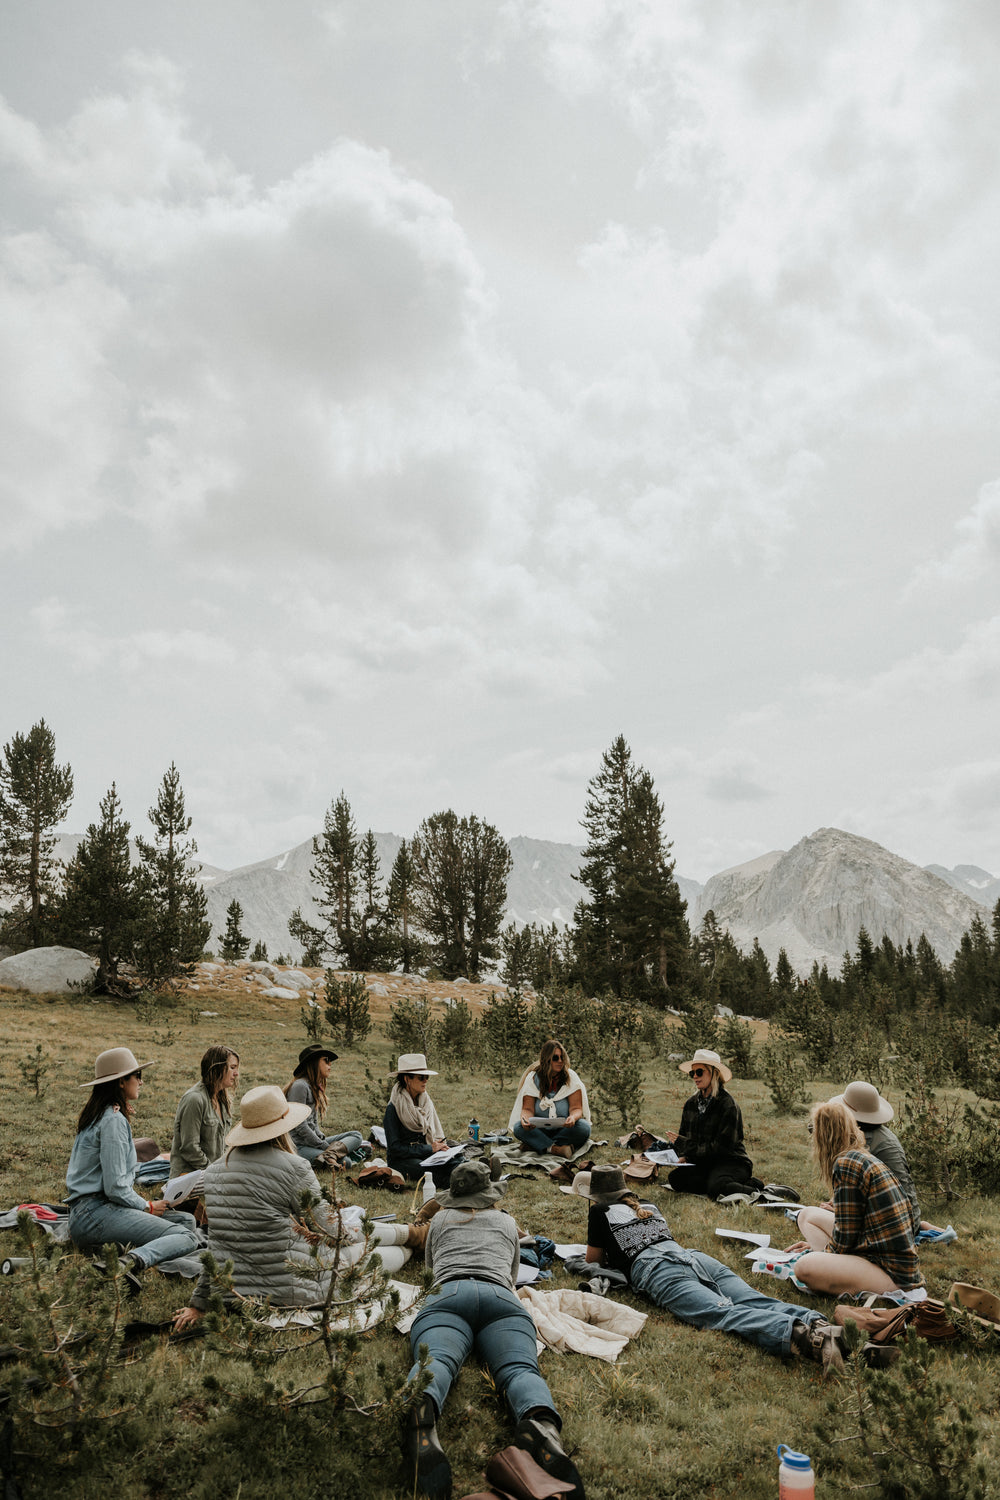 Darling Adventure: Eastern Sierras, CA July 30th-August 2nd, 2020